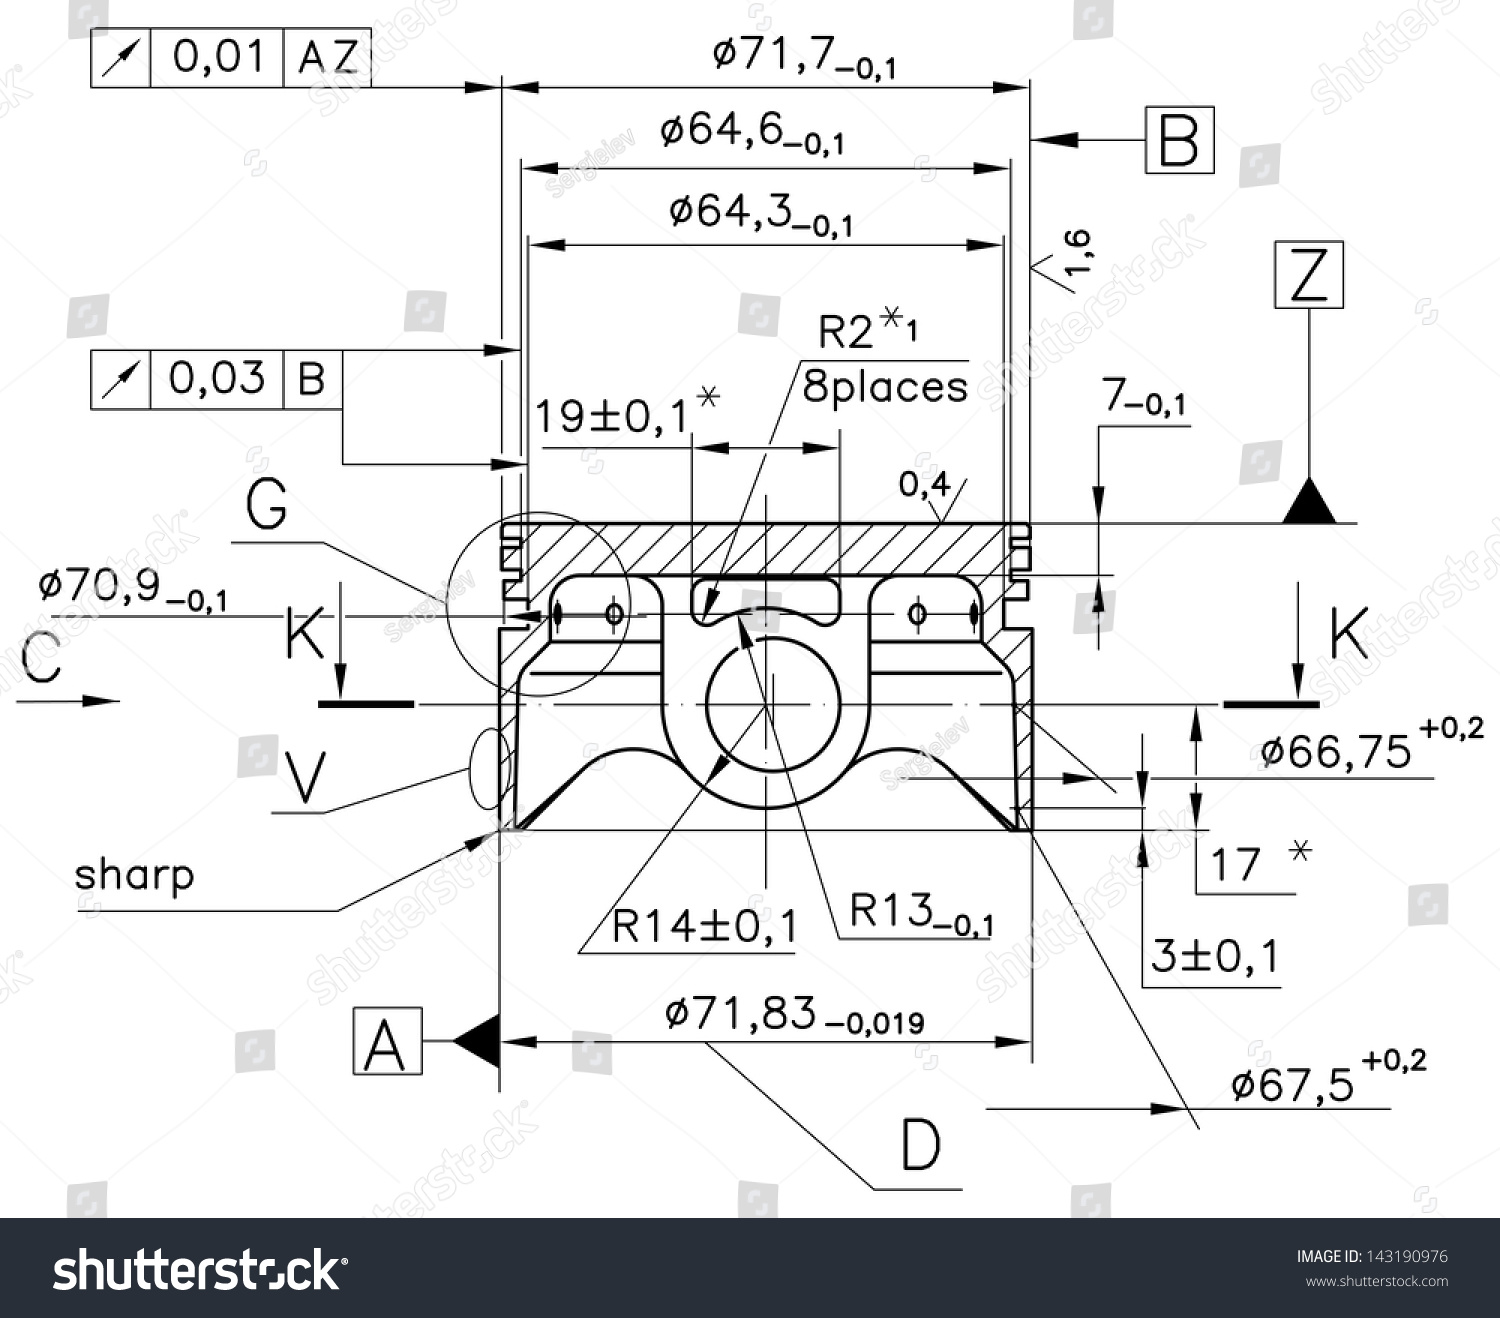 Engine Piston Diagram Illustration Guide And Troubleshooting Of Car Design Technical Drawings Nonexistent Internal Combustion Stock Rh Shutterstock Com How An Works